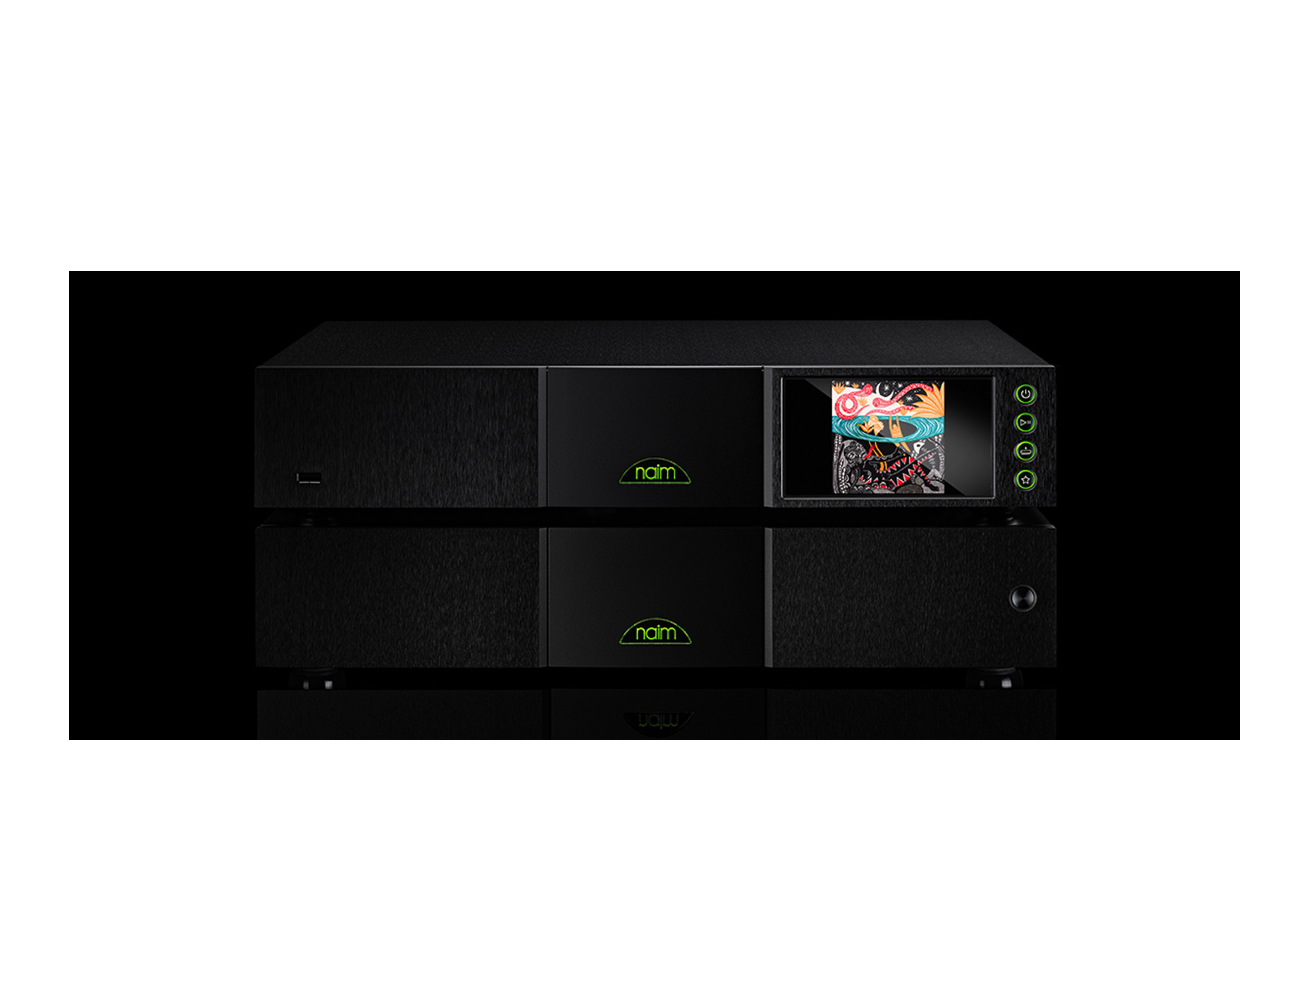 Naim Network Music Players